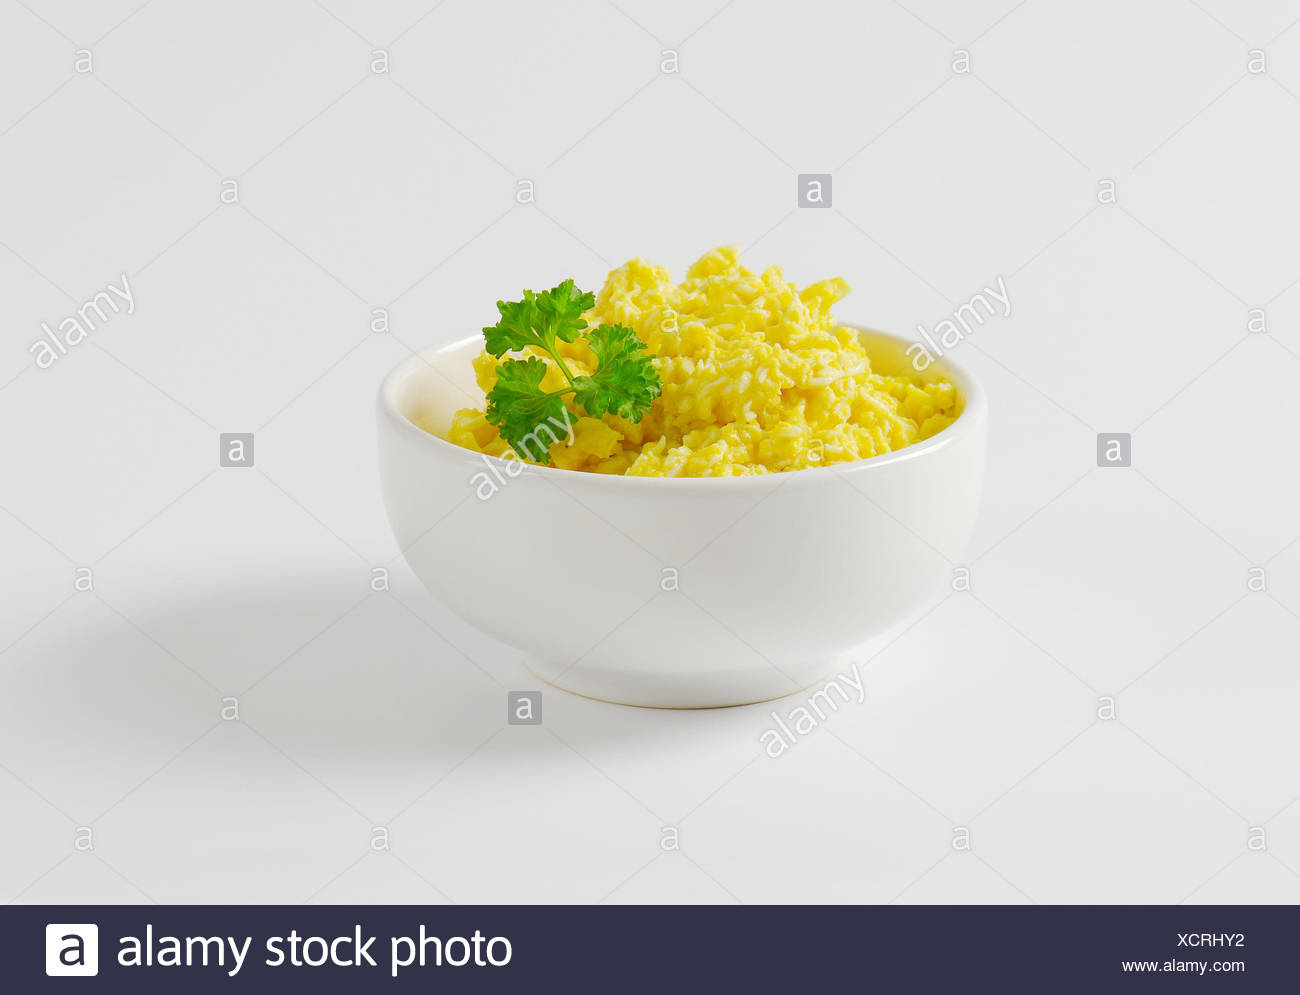 Bowl of scrambled eggs - Stock Image